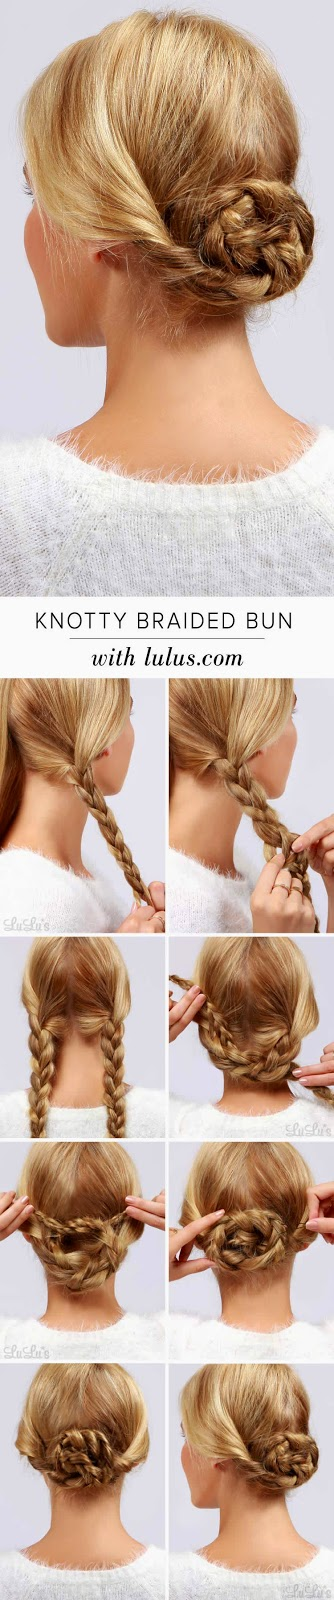 Knotty Braided Bun Hair Tutorial